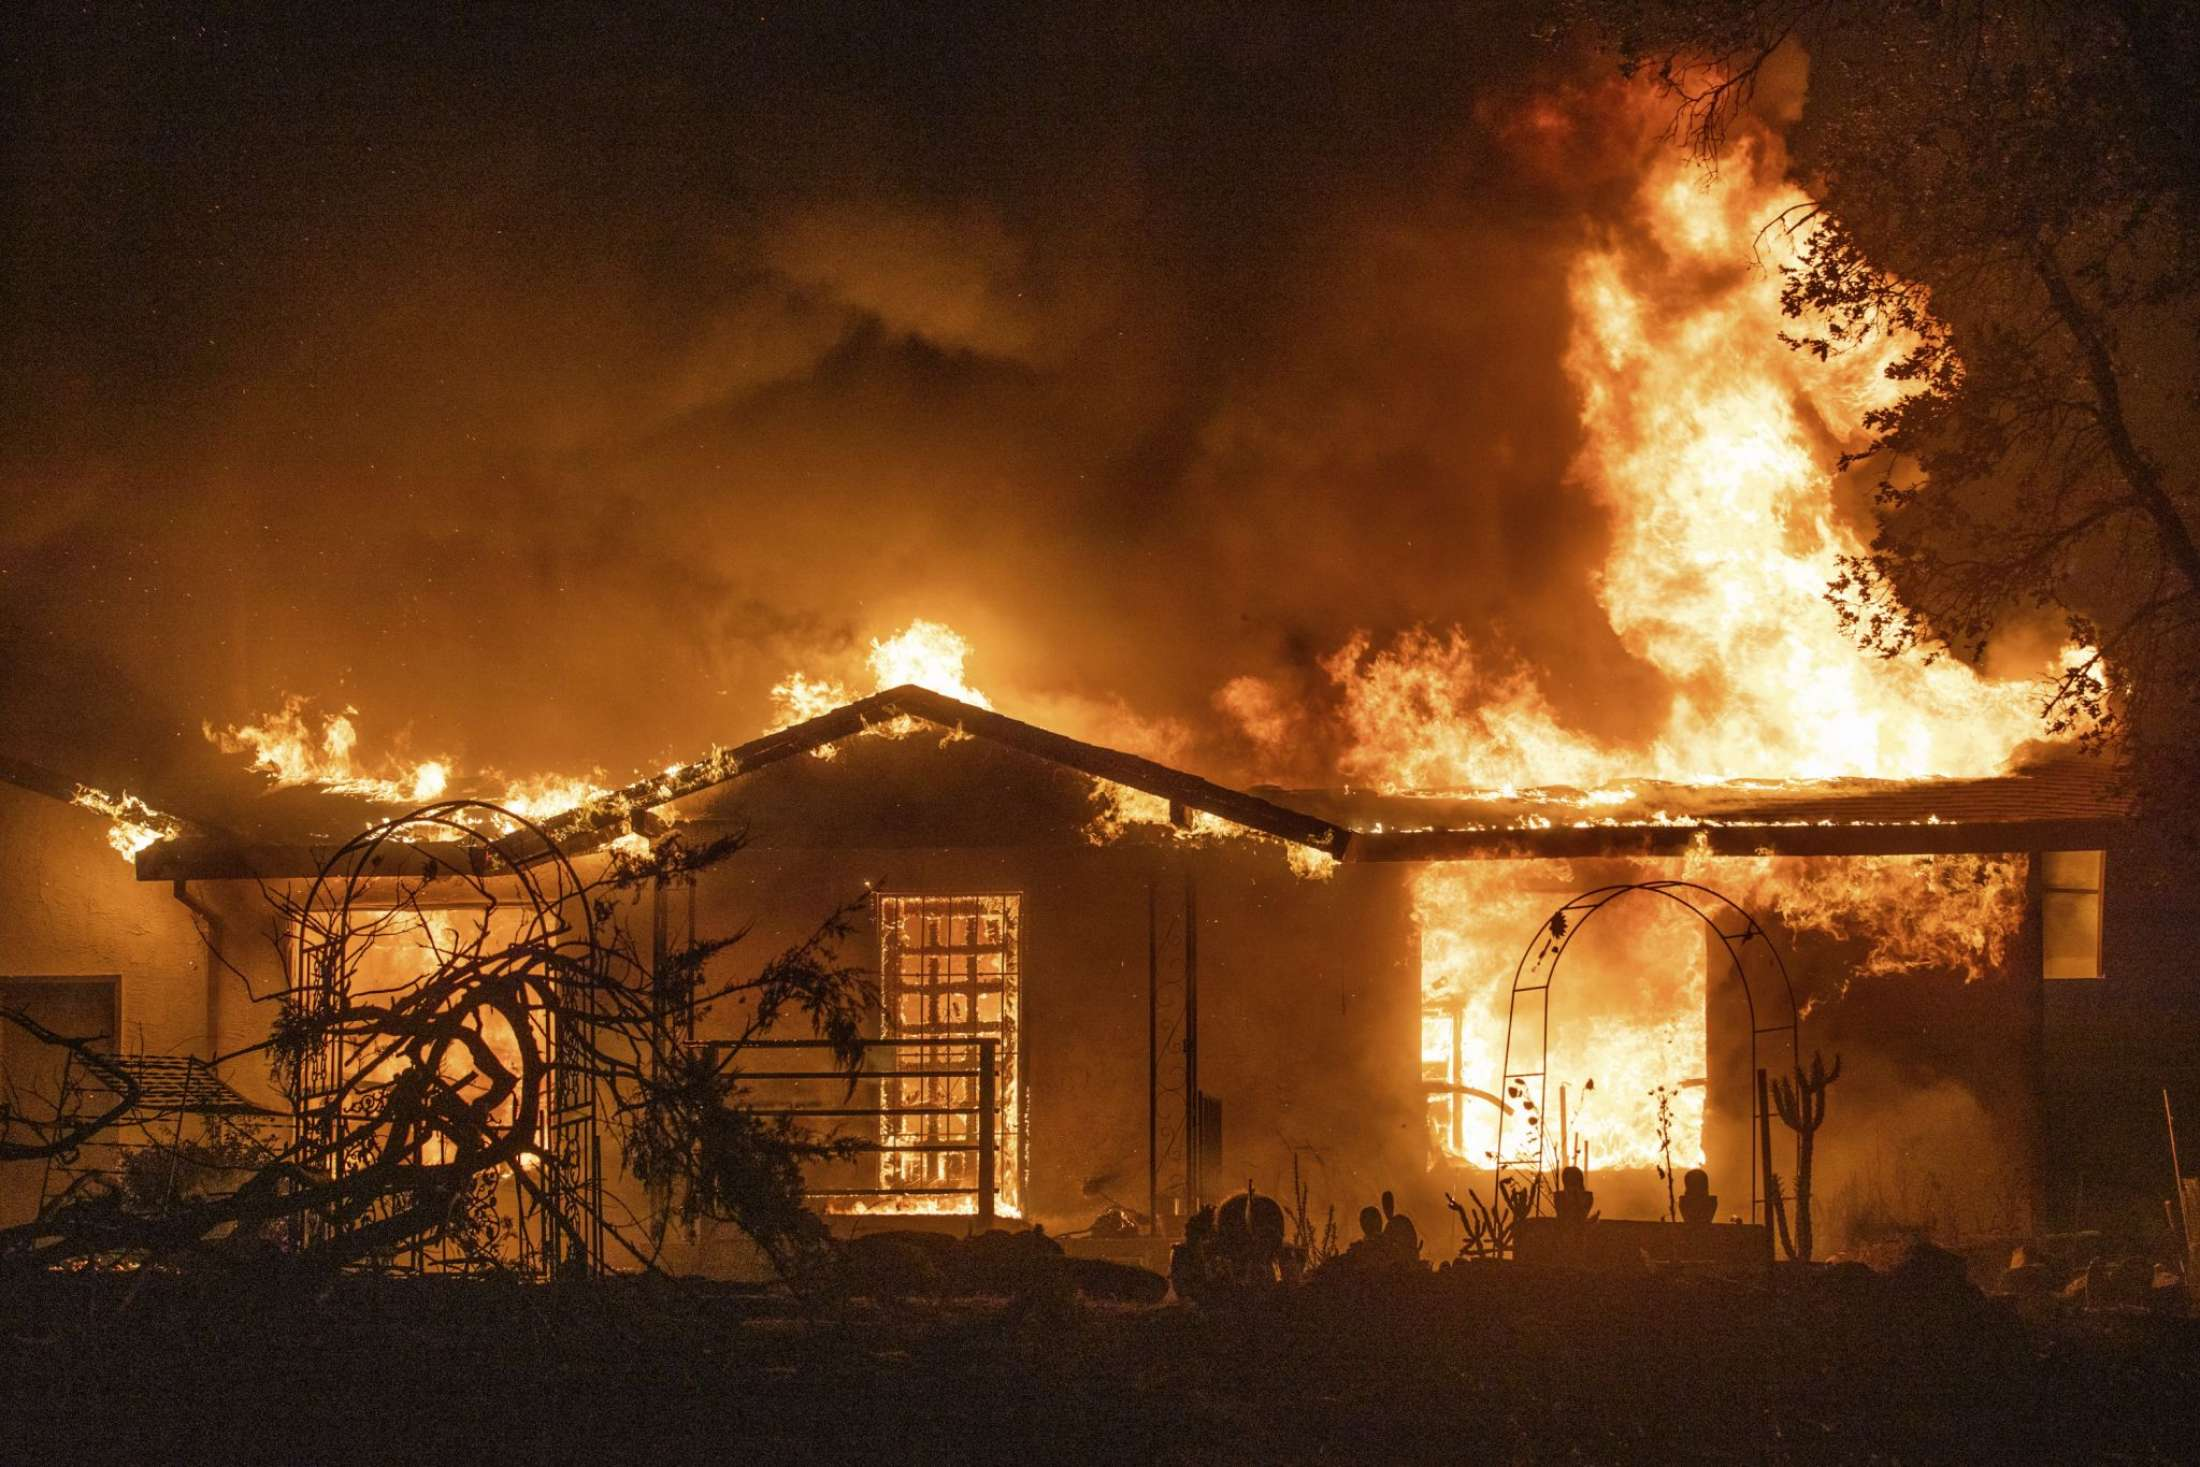 Northern California wildfire doubles in size, kills 3 people